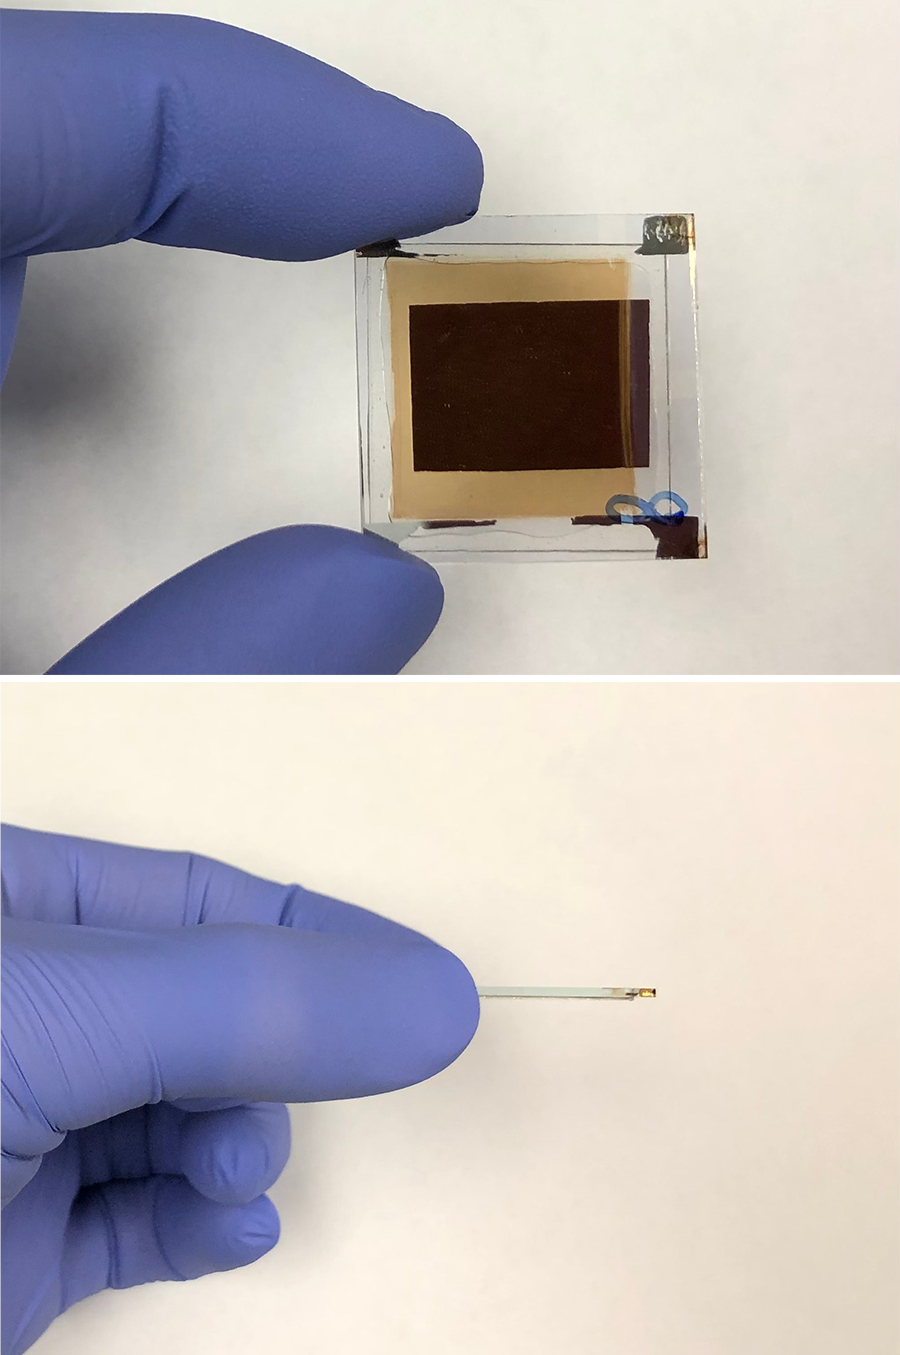 New Infrared Imager Converts Infrared Light into Clear Images